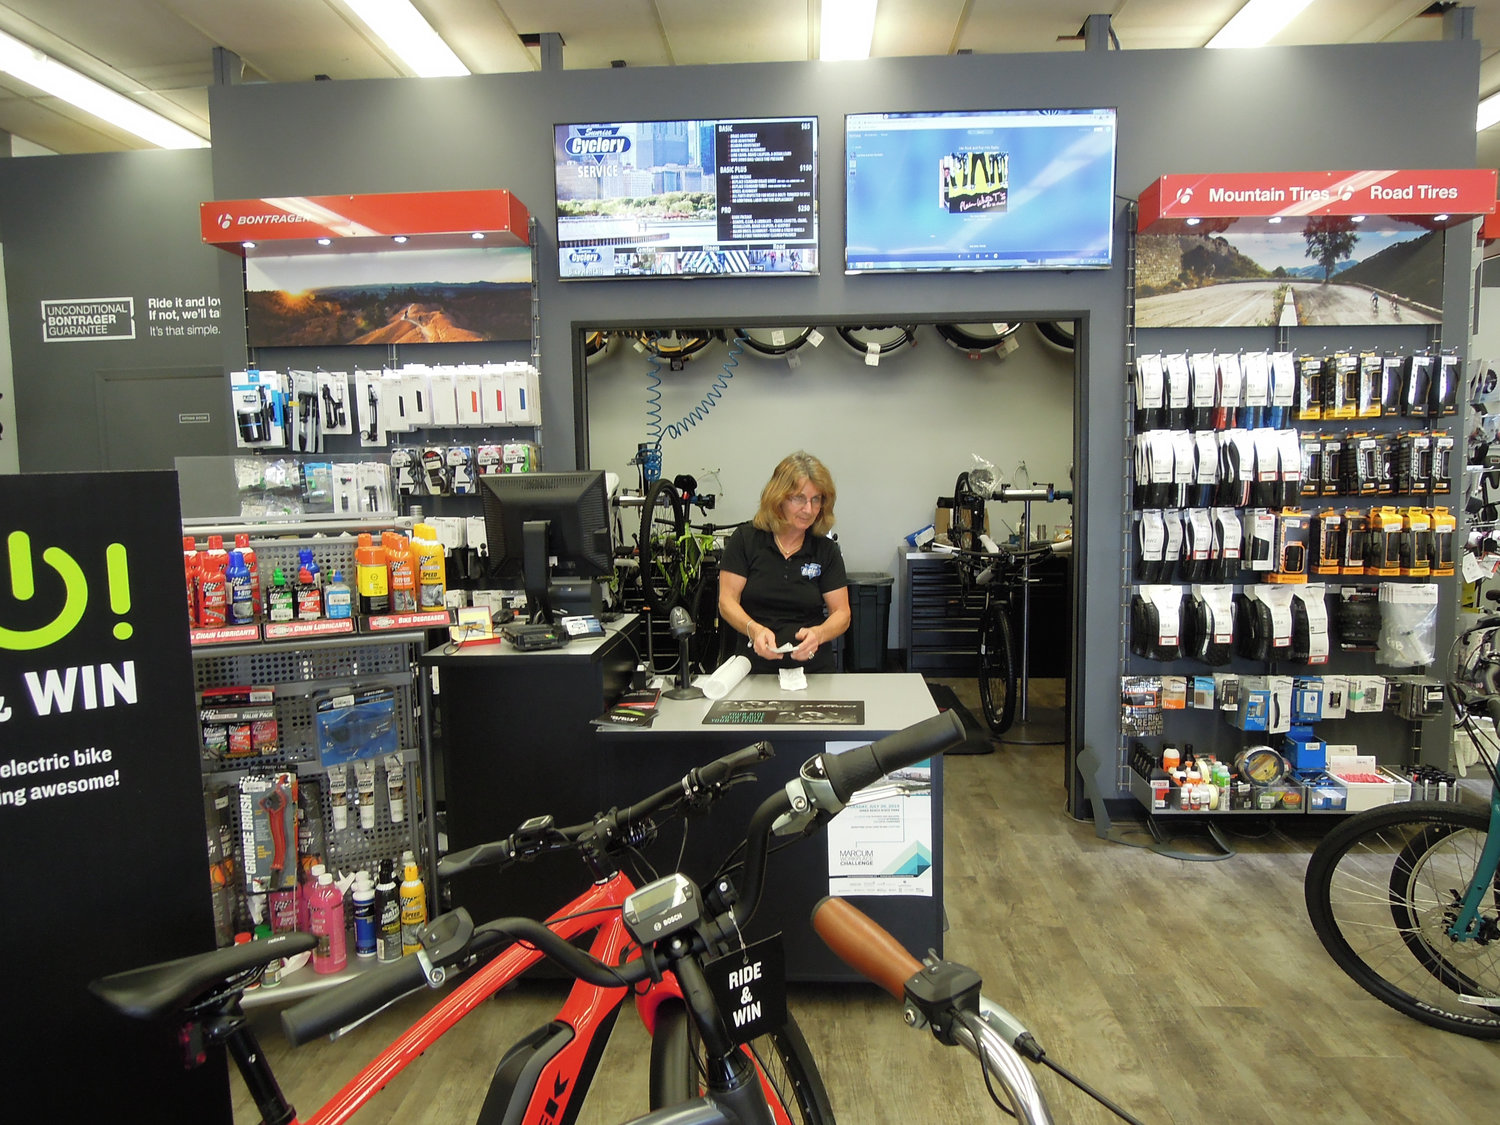 Cathy Totino, the owner and manager of Sunrise Cyclery in Massapequa, emphasized the need for rider safety.